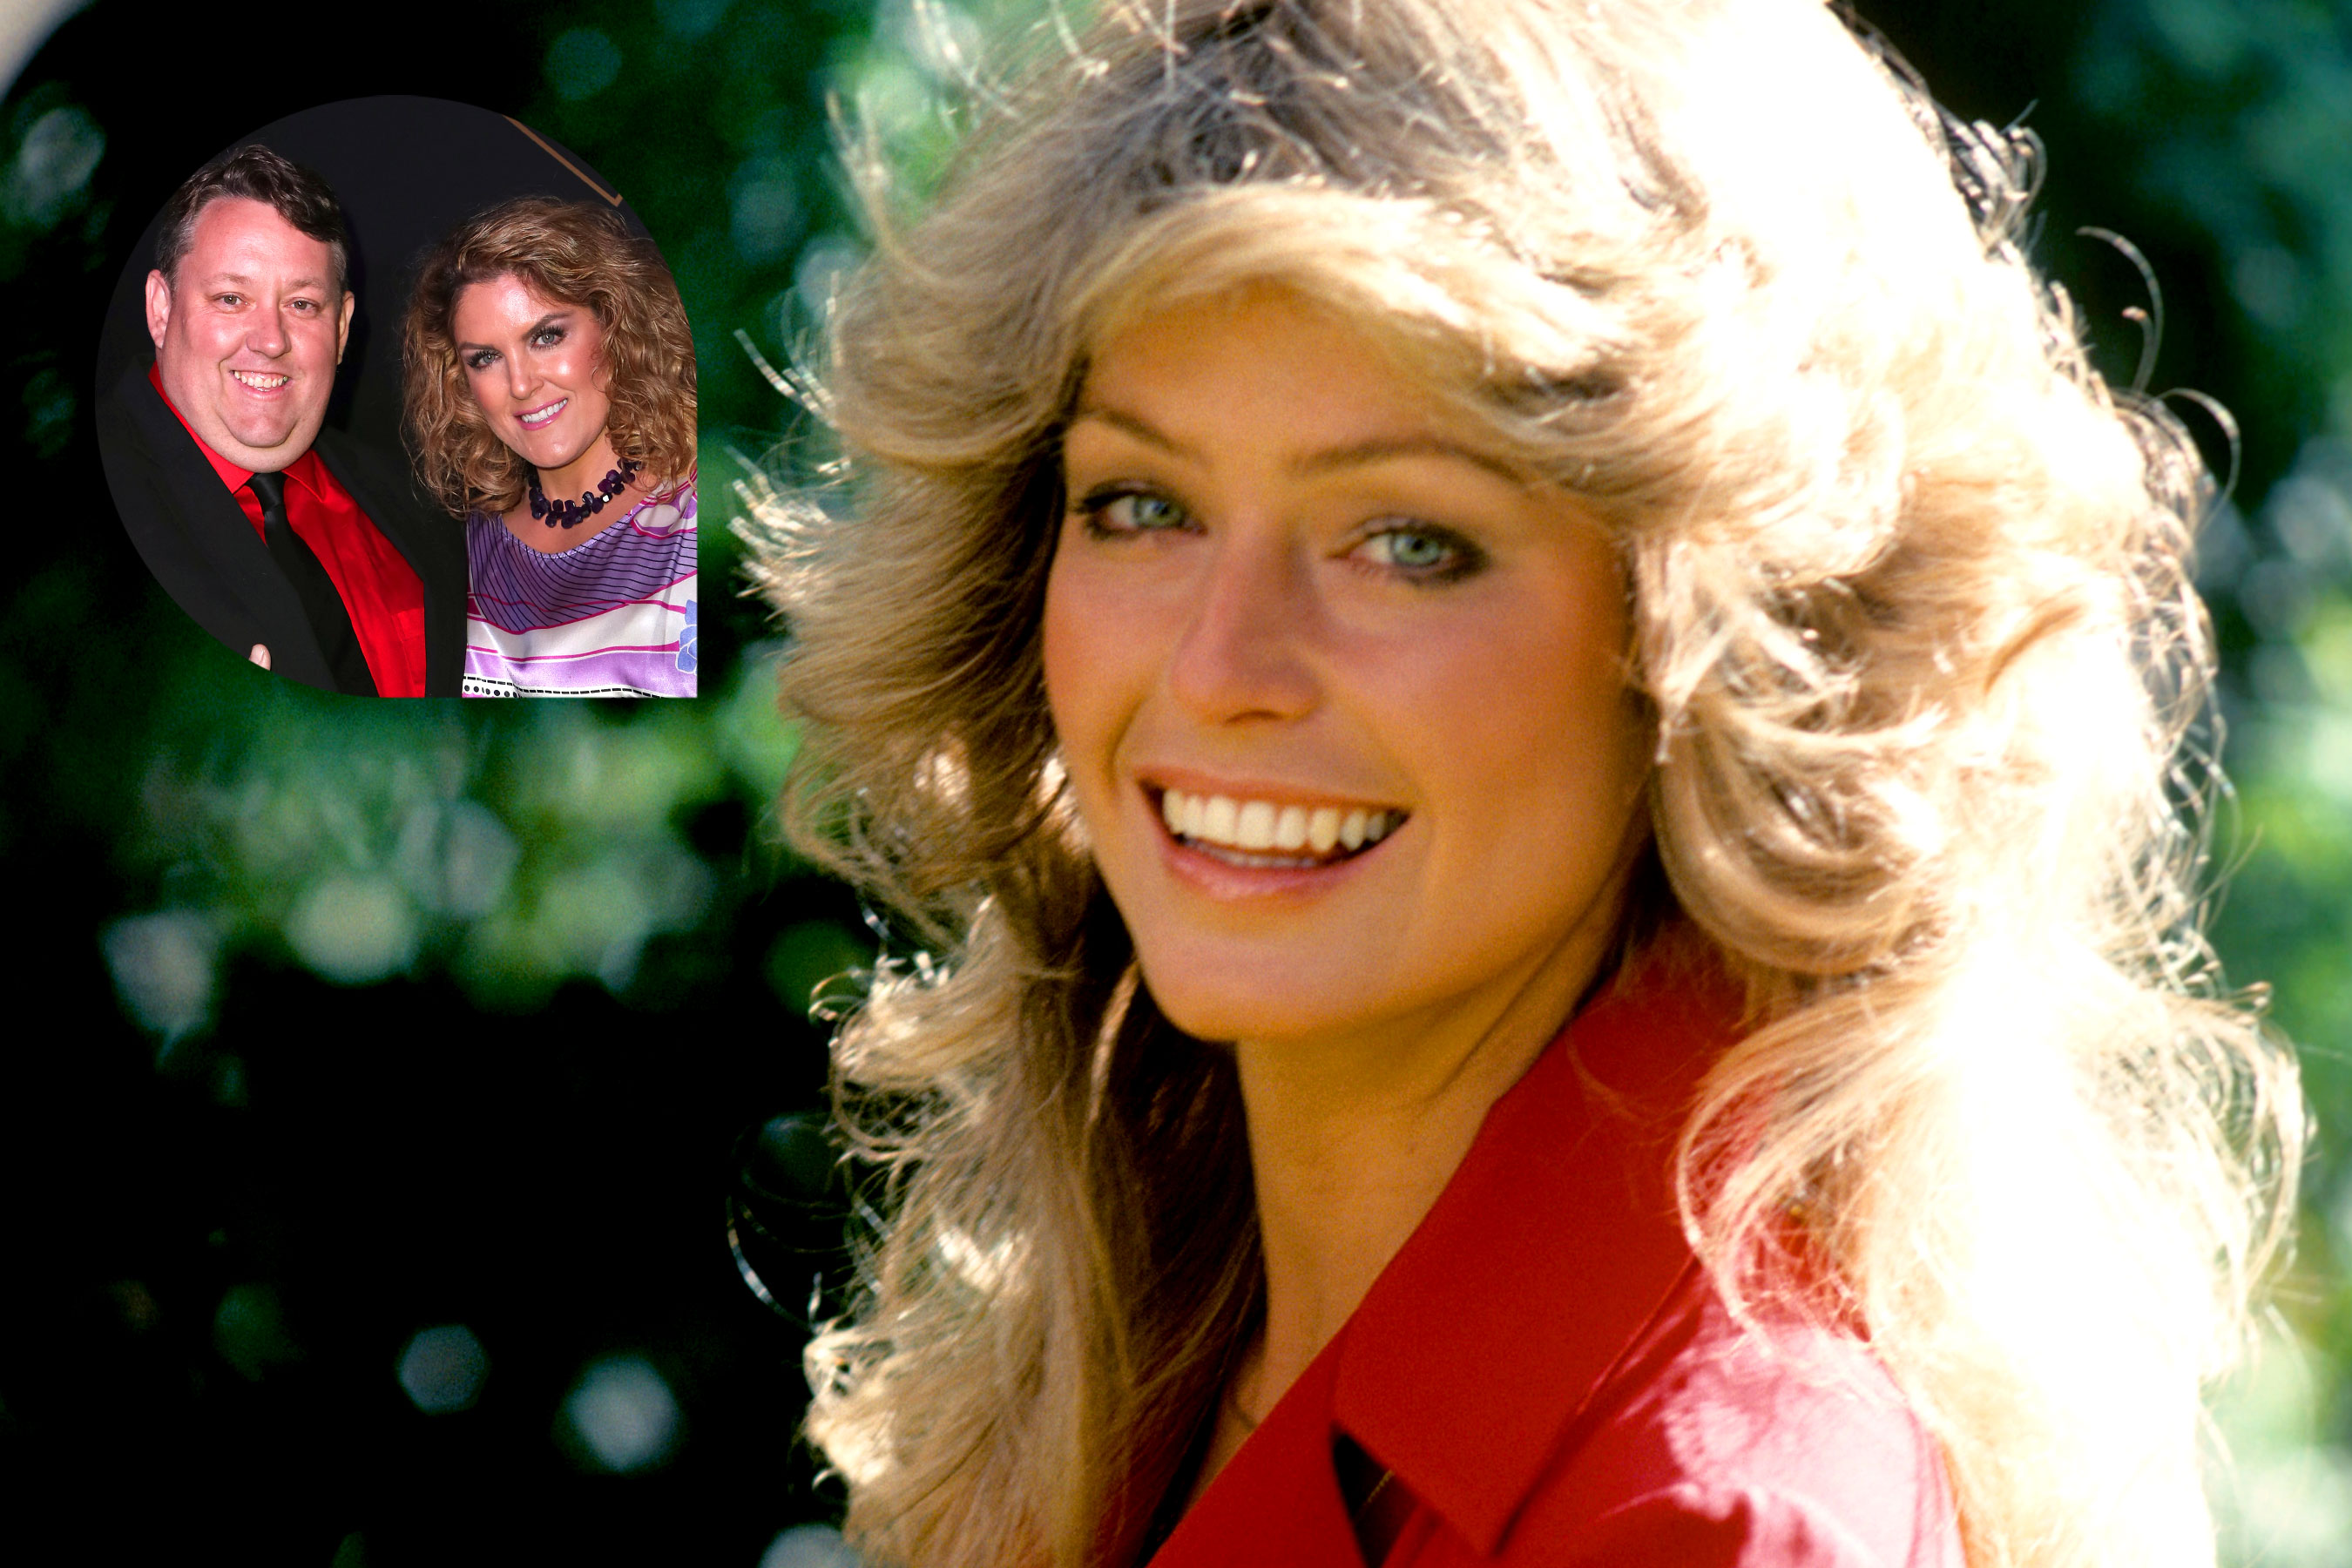 Farrah Fawcett's storage units bought by 'Storage Wars' stars for $3,500